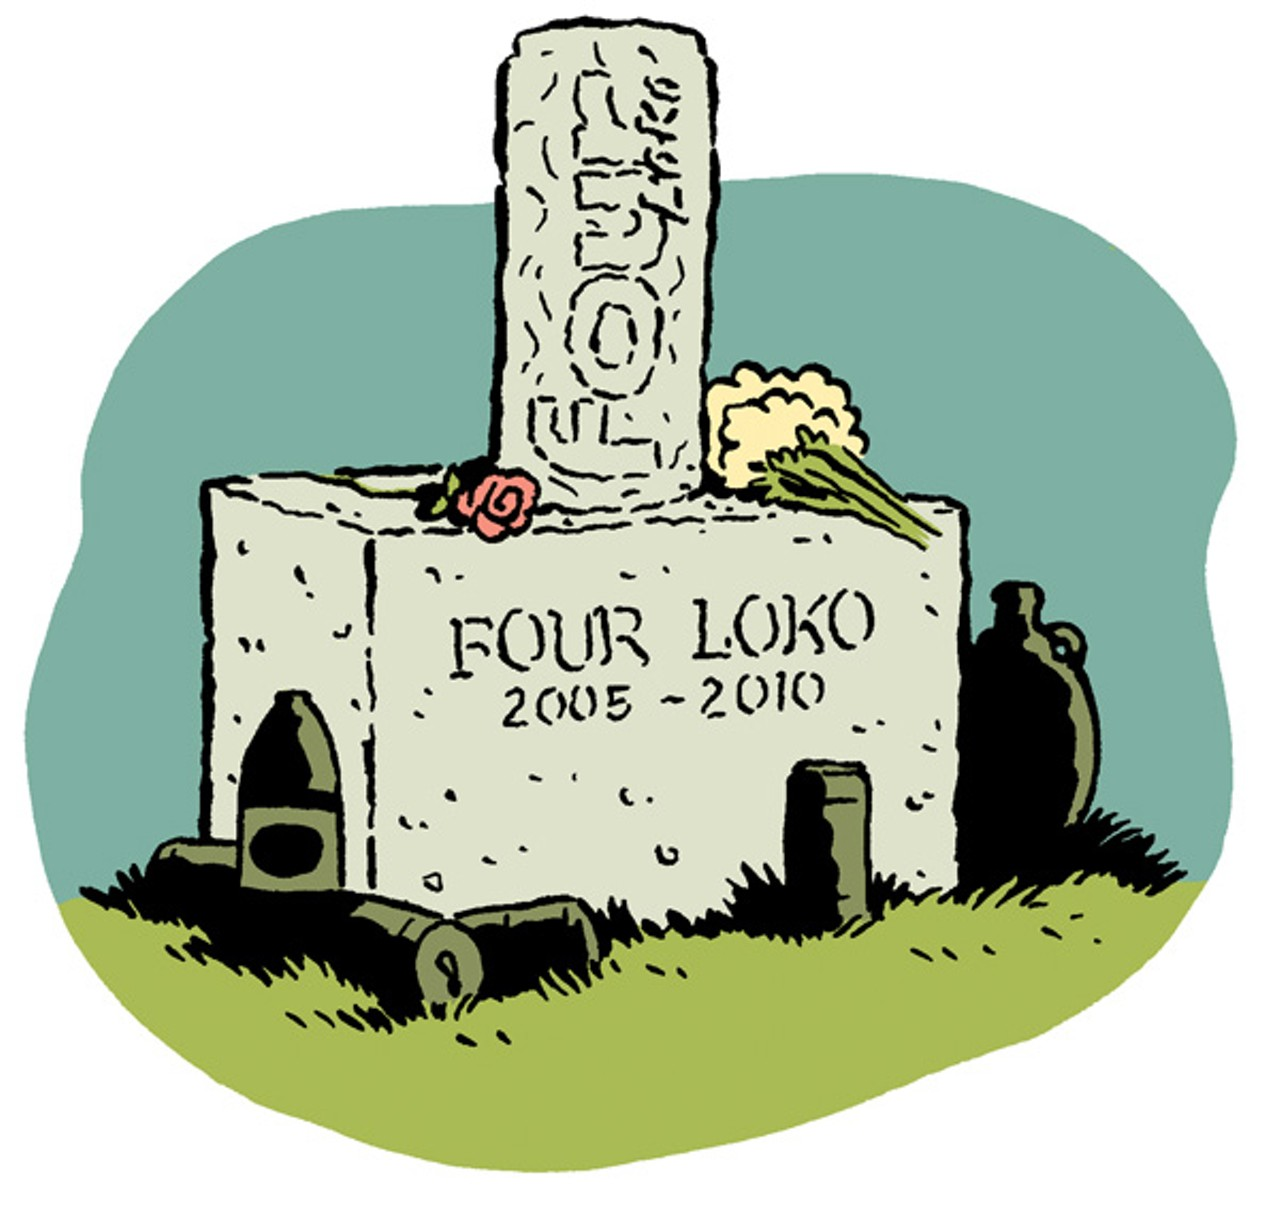 Headstone clipart banned words image freeuse stock The Life and Death of Four Loko | Culture | Oakland, Berkeley & Bay Area image freeuse stock